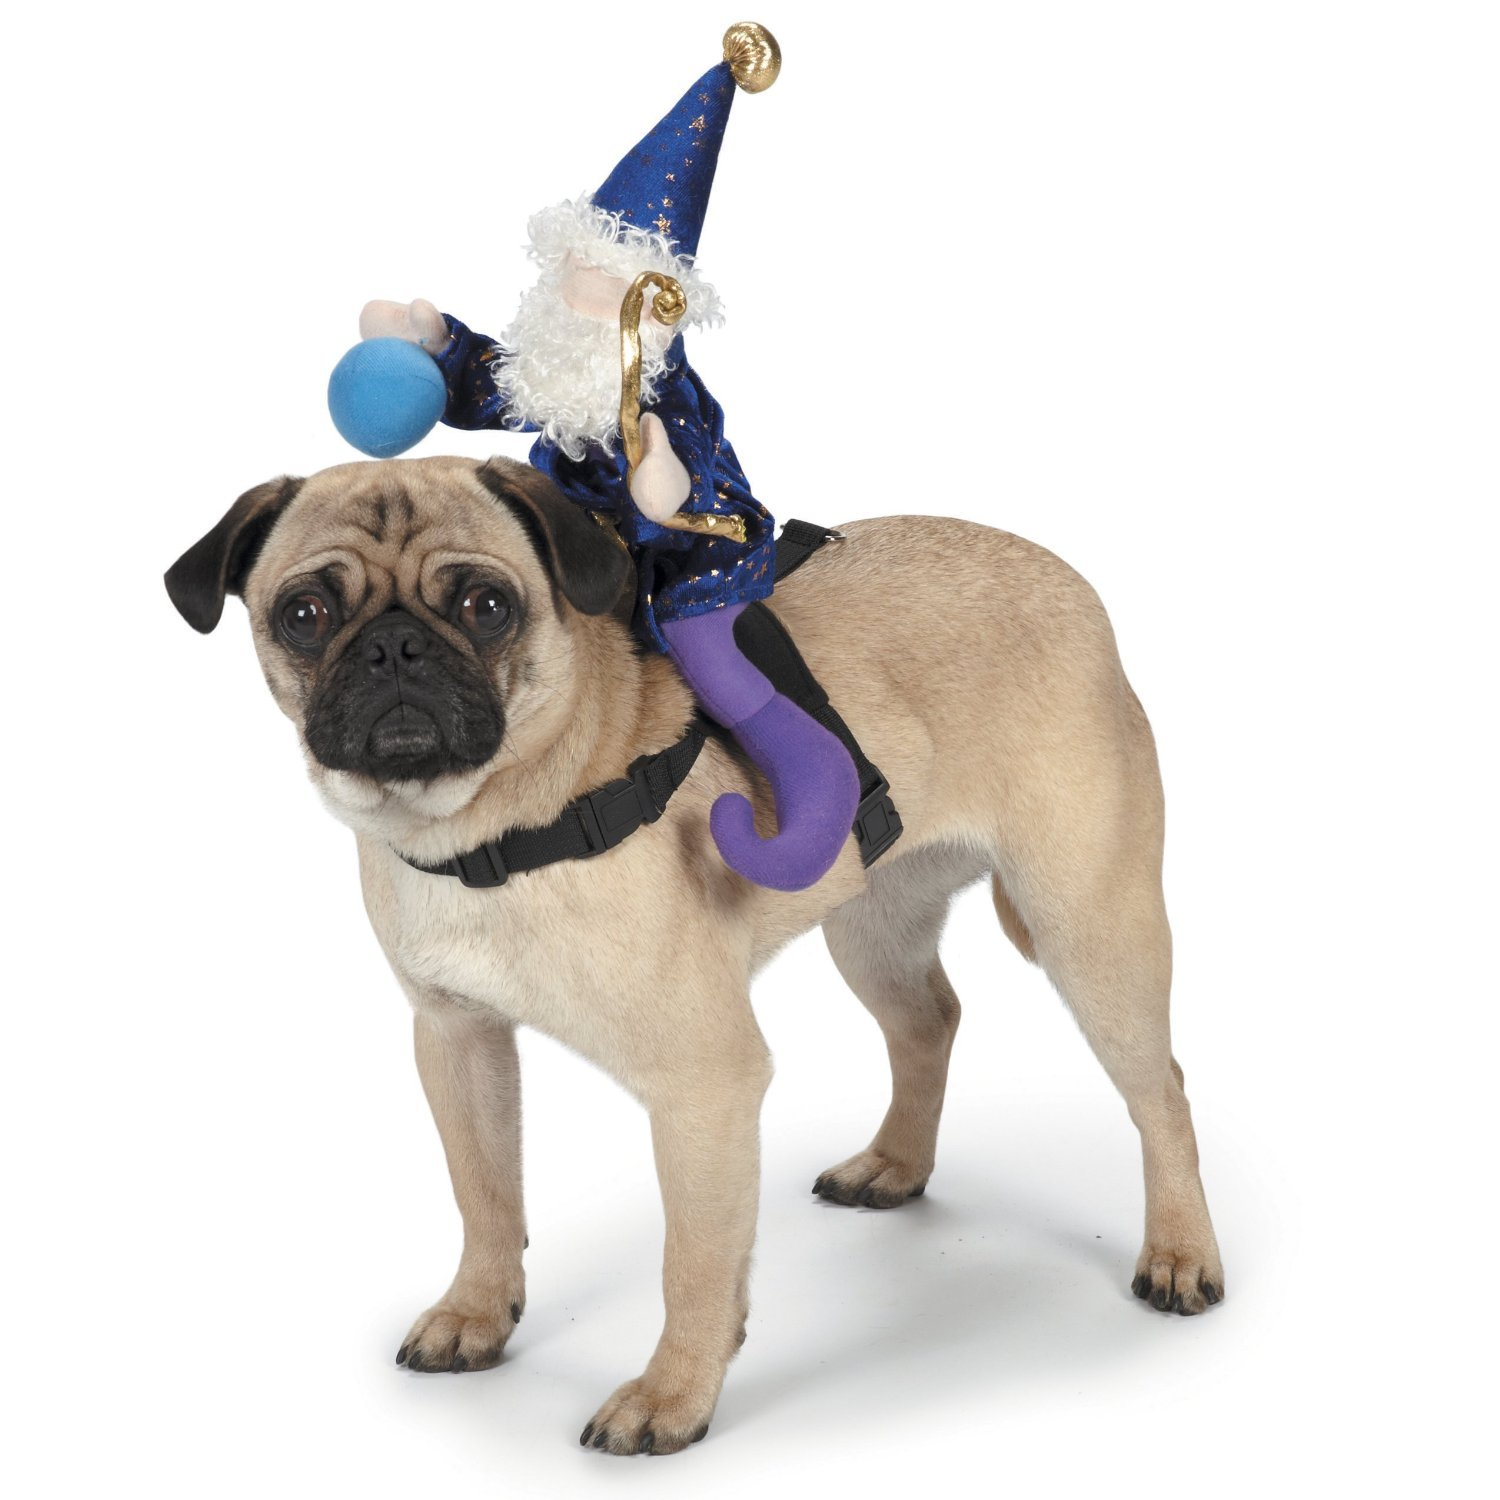 Amazon.com  Zack u0026 Zoey Wizard Saddle Dog Costume Medium  Pet Supplies  sc 1 st  Amazon.com & Amazon.com : Zack u0026 Zoey Wizard Saddle Dog Costume Medium : Pet ...